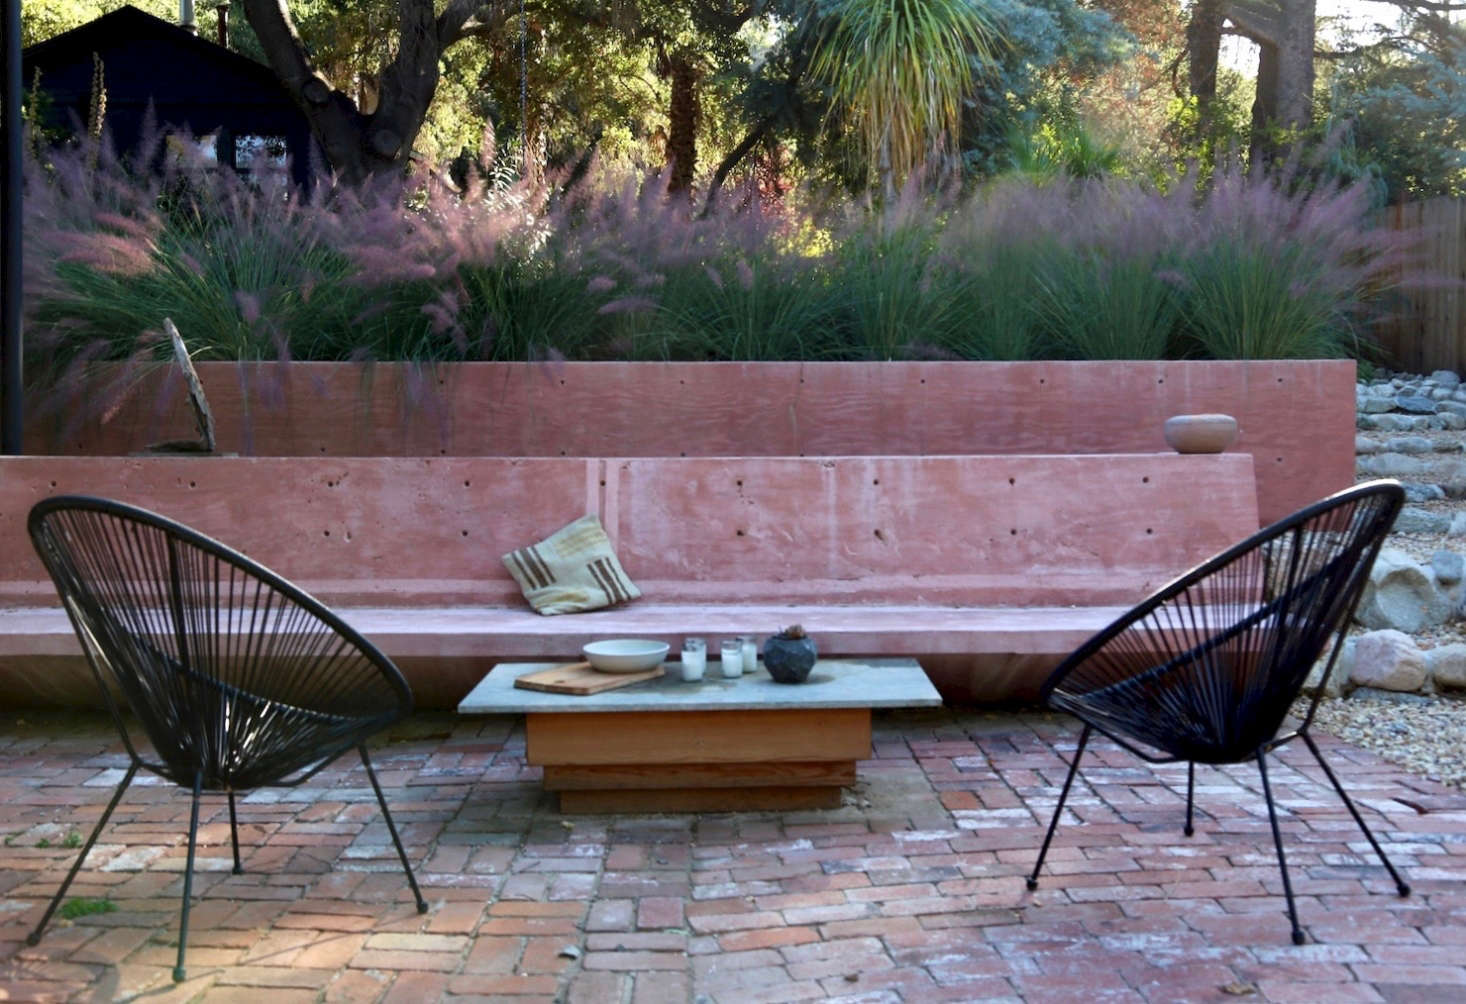 A long concrete bench juts out from the house, and defines the brick patio as an outdoor room. Matthew Morgan made the coffee table, which has a wood base with marble slab top. The black Acapulco chairs are from a garden store at the base of Topanga Canyon.